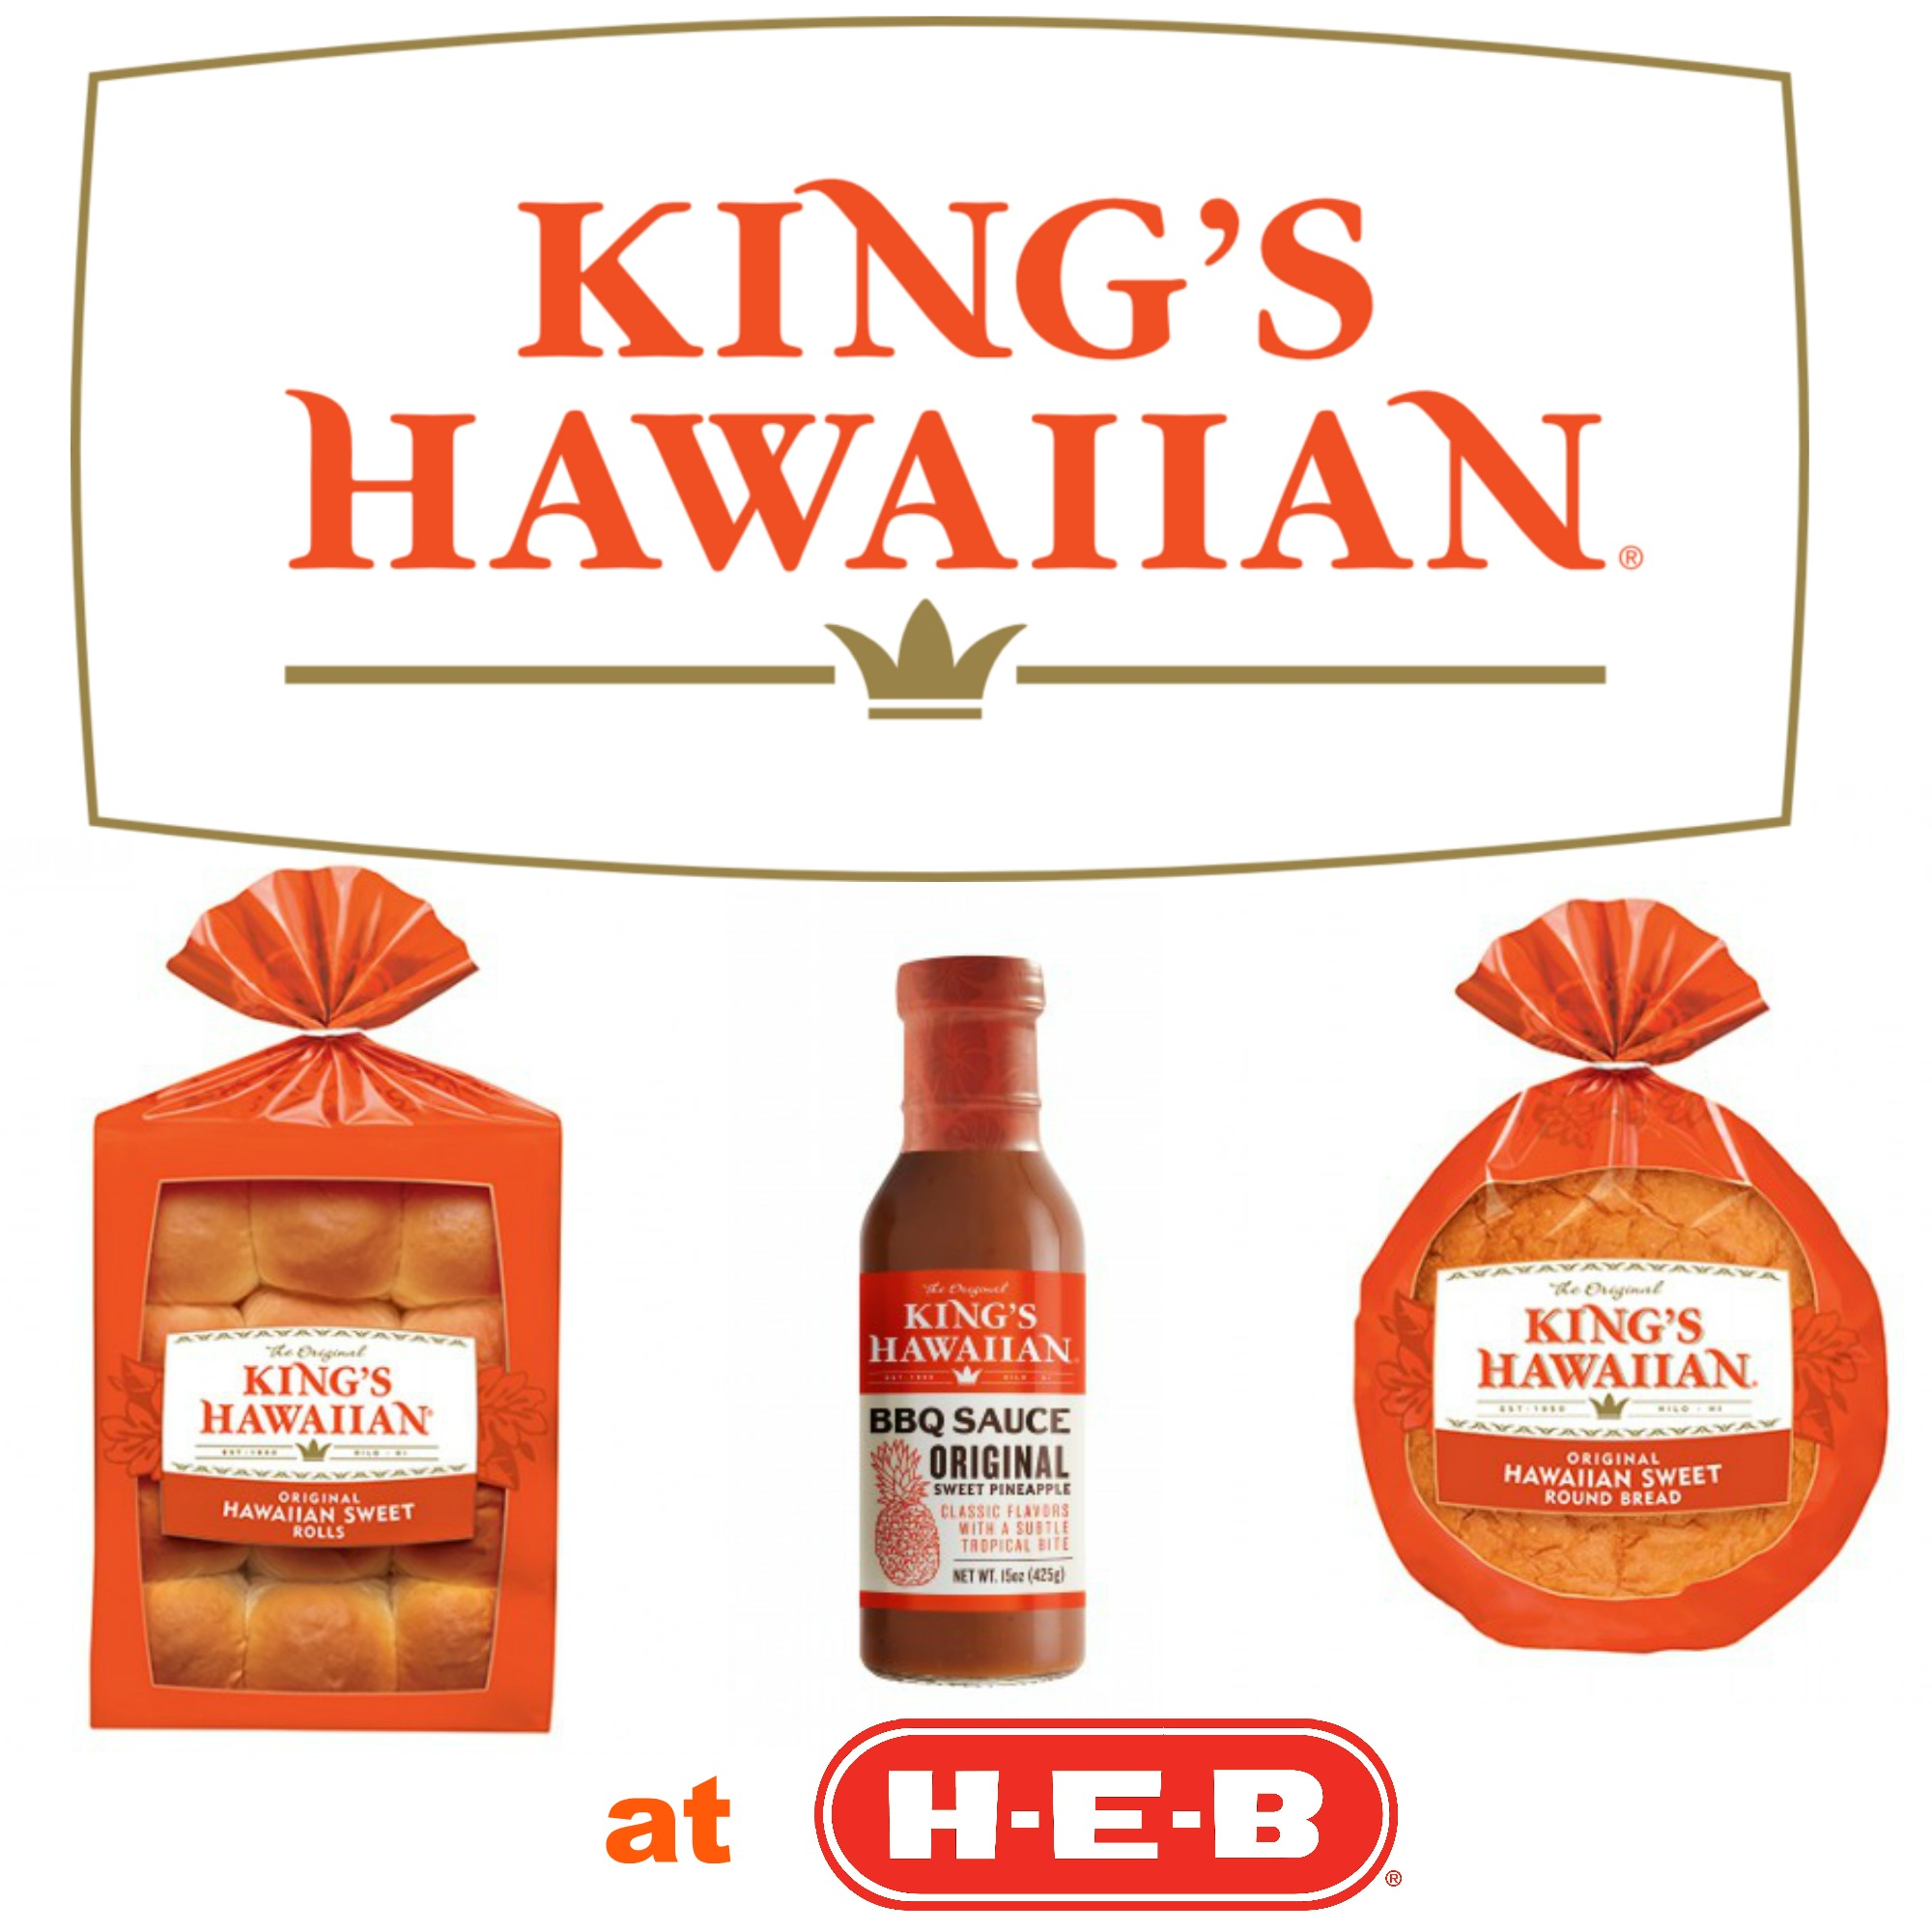 find-kings-hawaiian-products-at-your-local-heb-gametimegrilling-ad